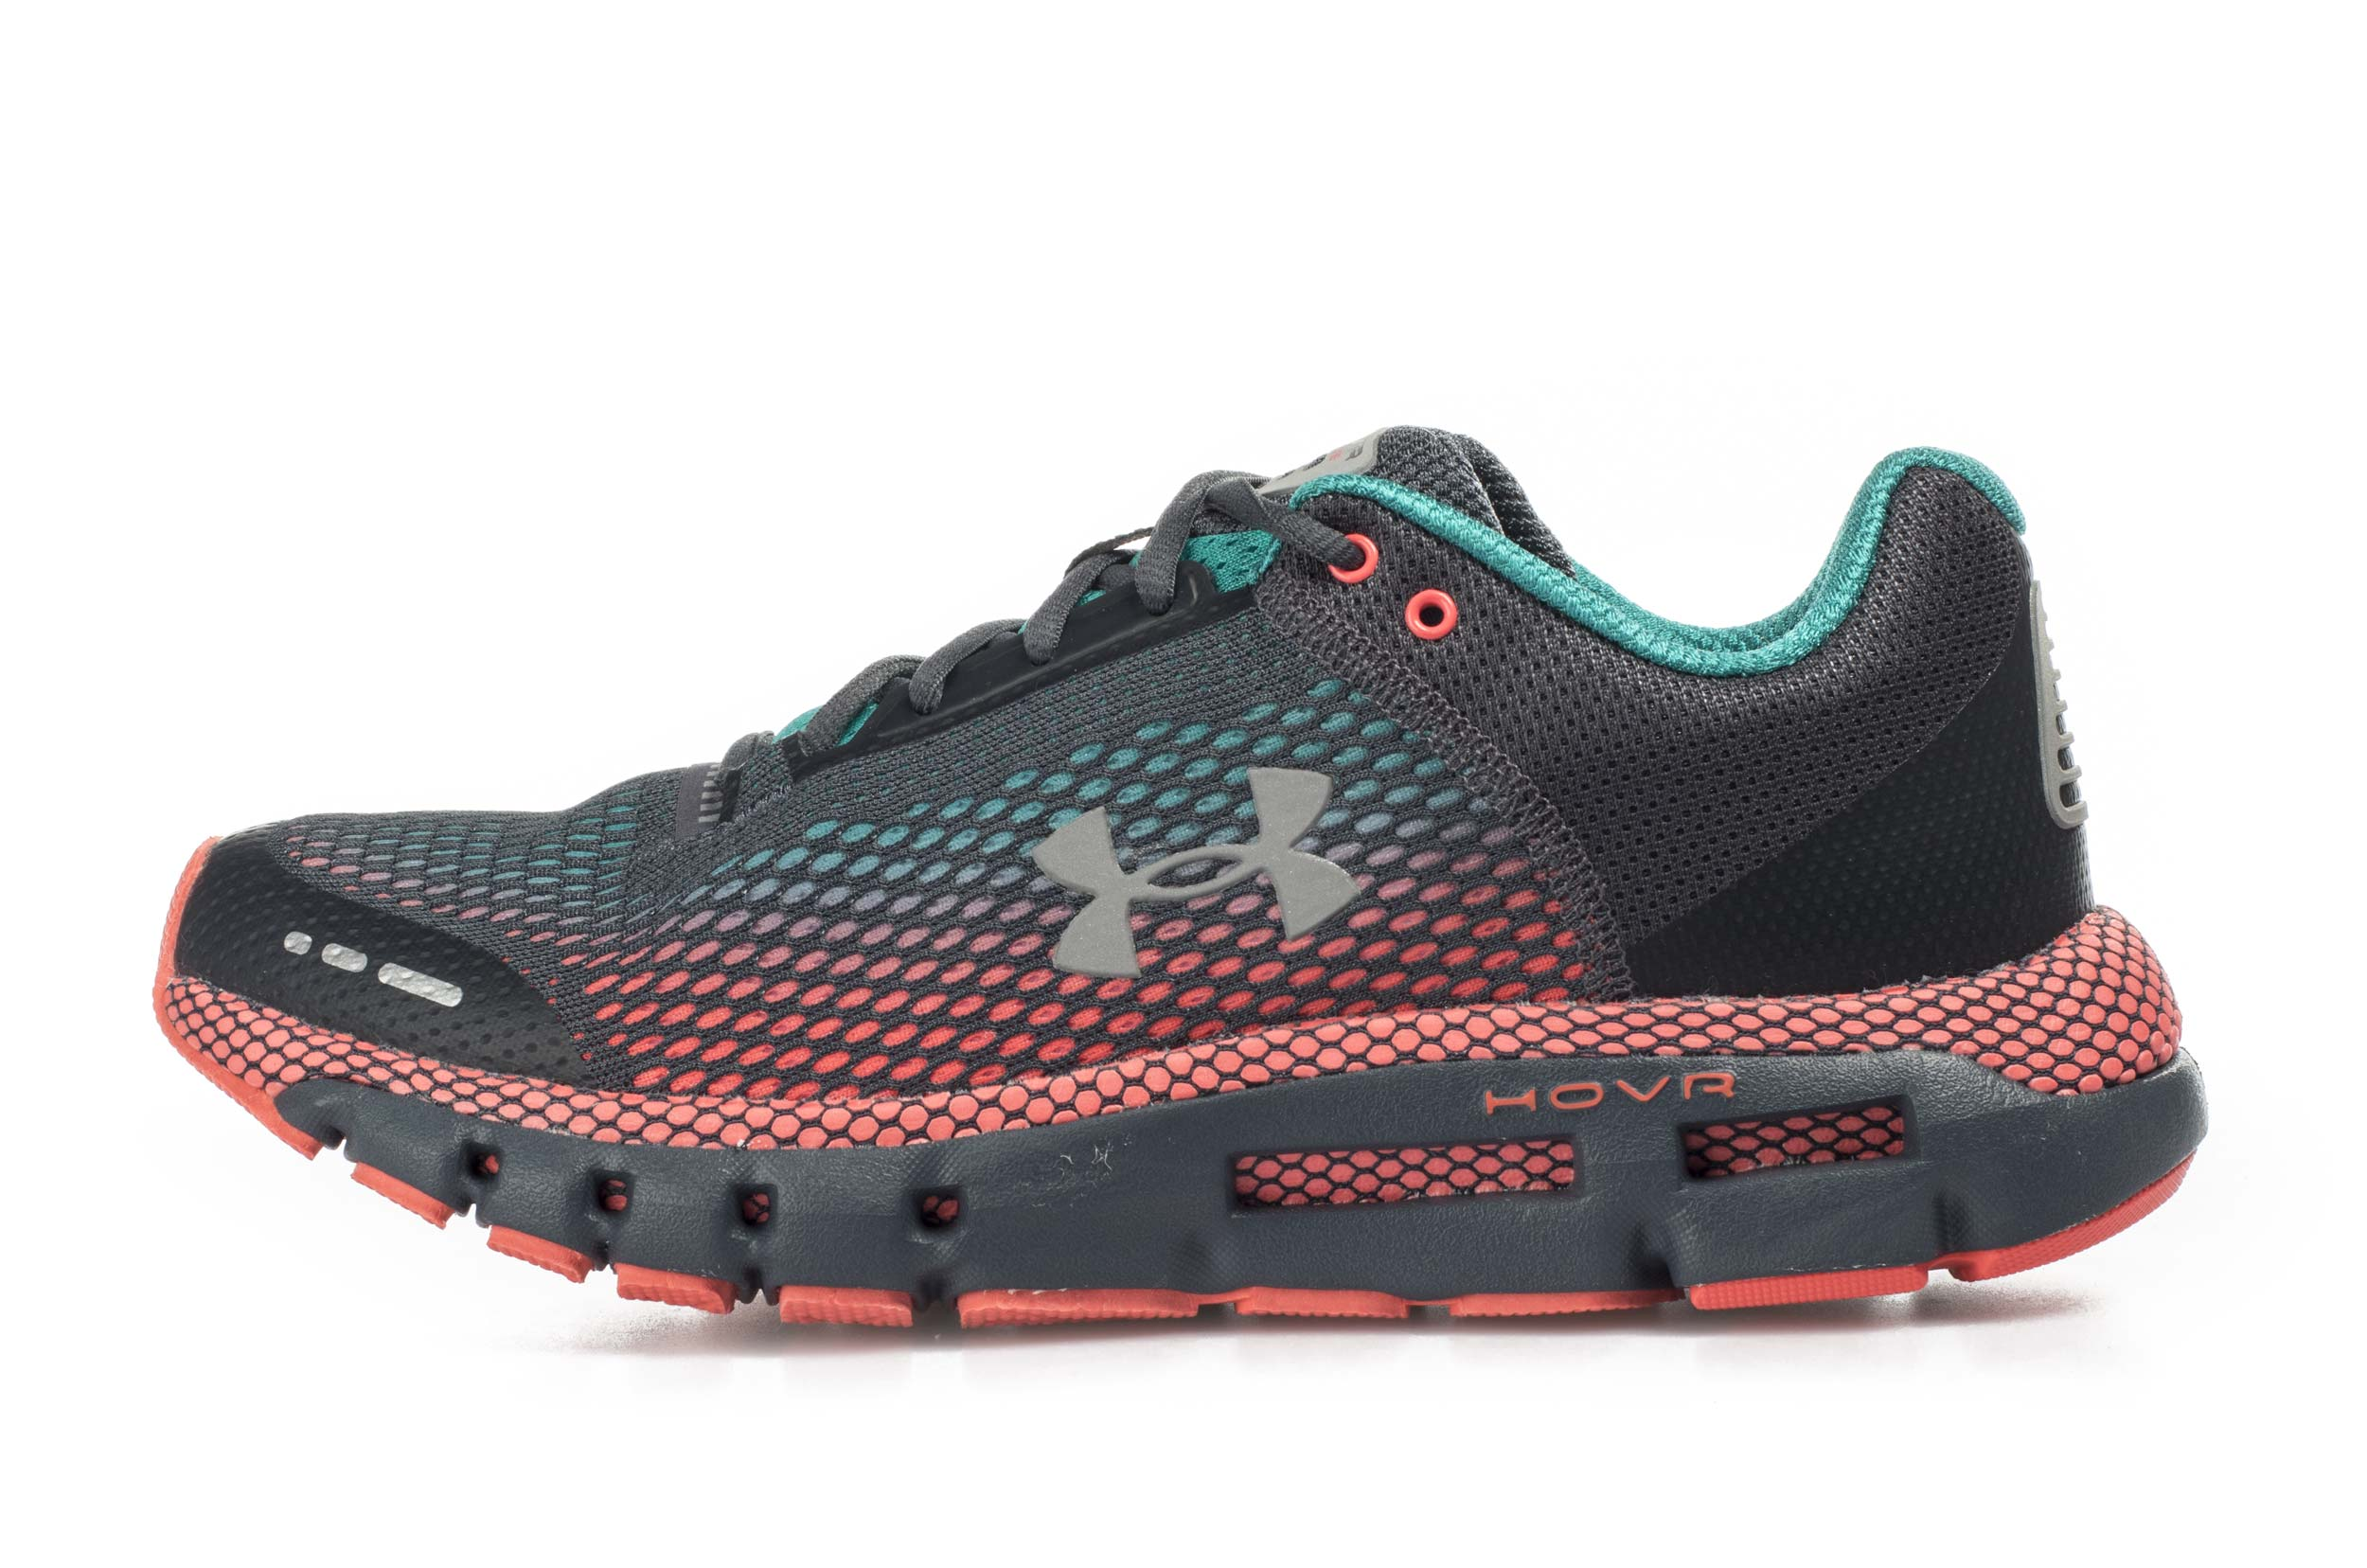 UNDER ARMOUR HOVR INFINITE 3021395-401 Γκρί